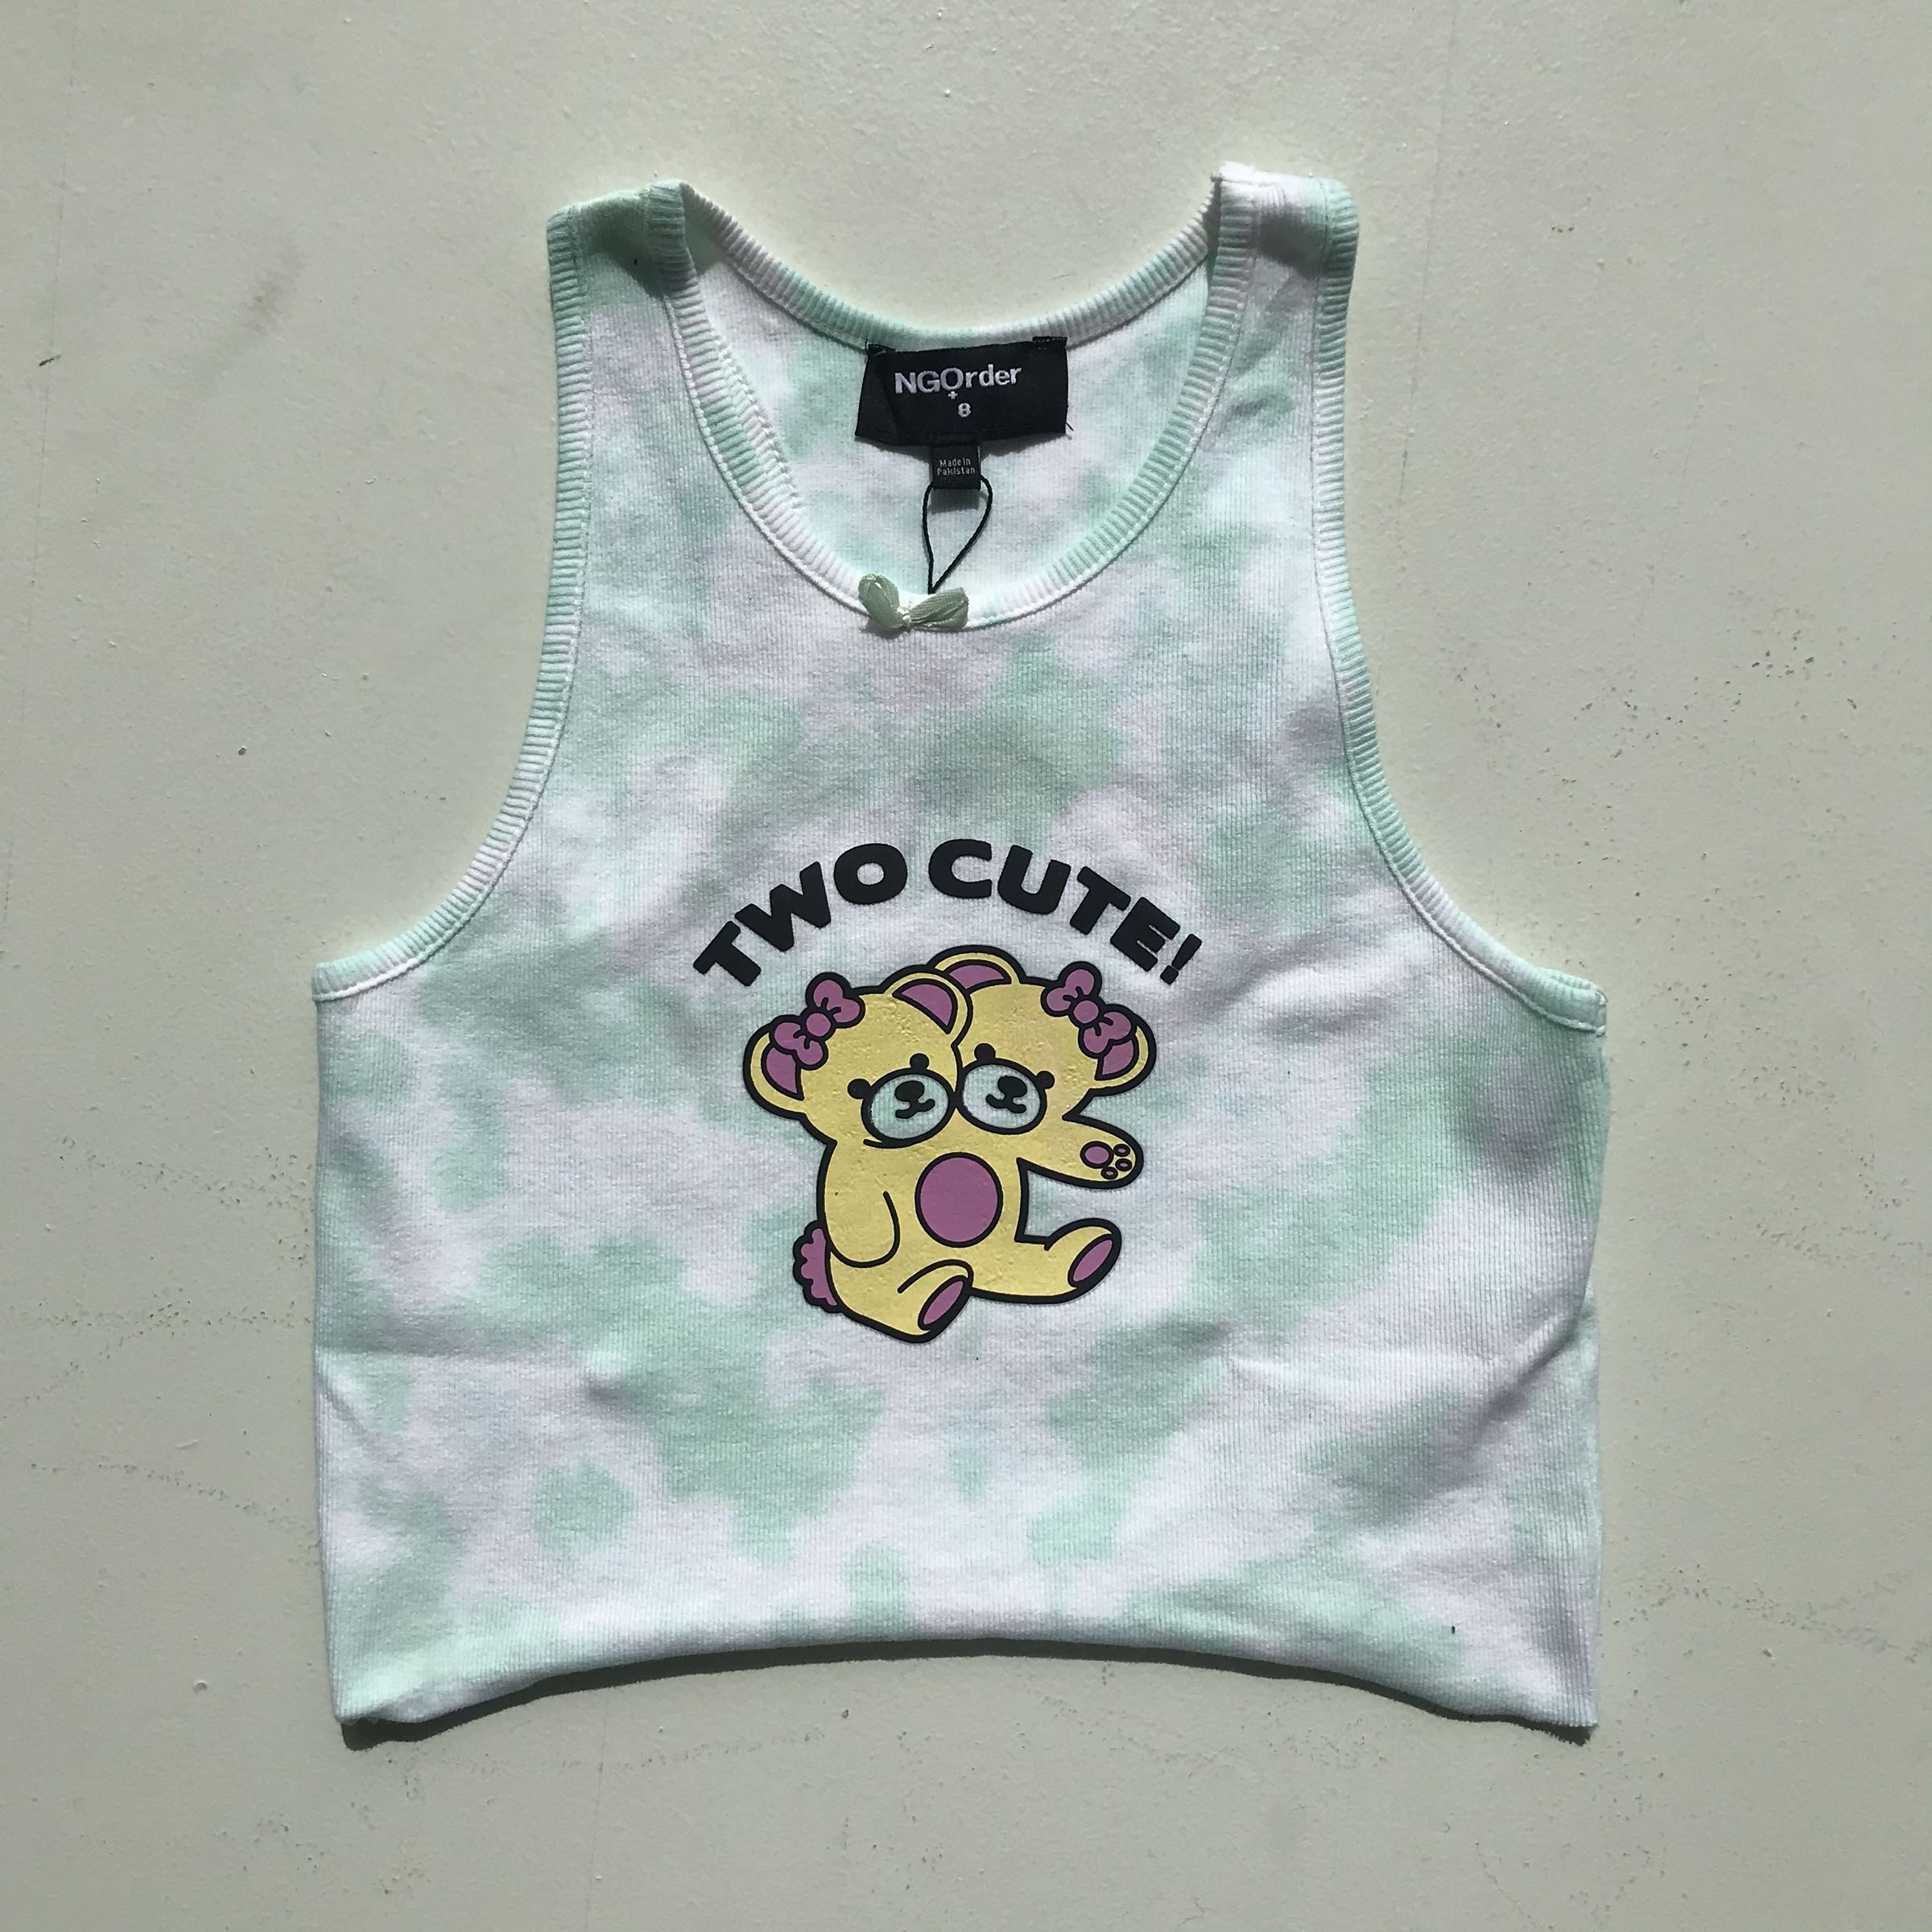 New Girl Order Two Cute Topp